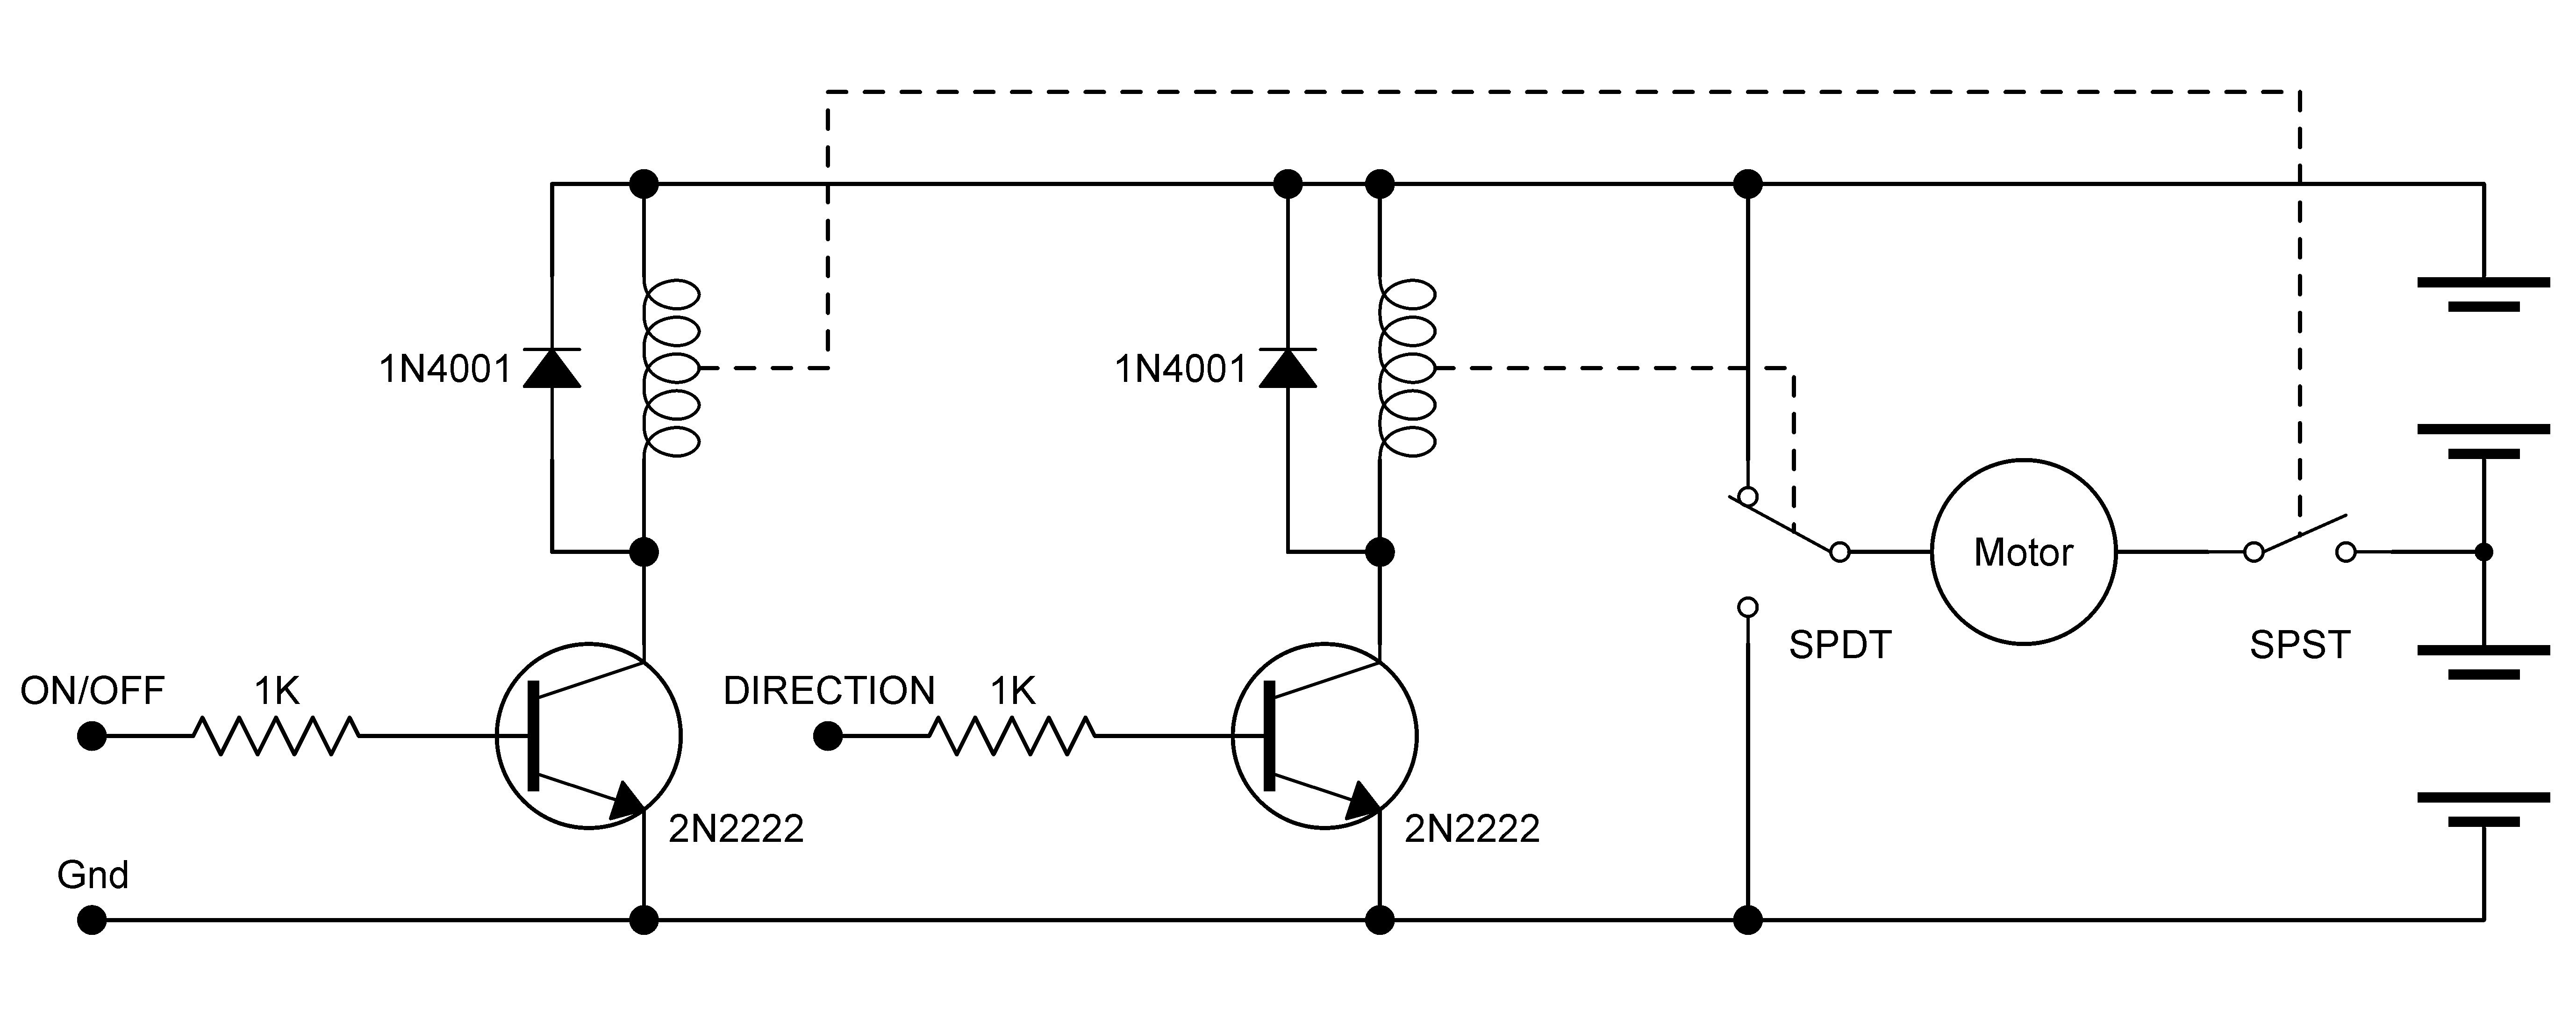 Lr39145 Toggle Switch Wiring Schematic Auto Electrical Diagram Usb Gm Related With